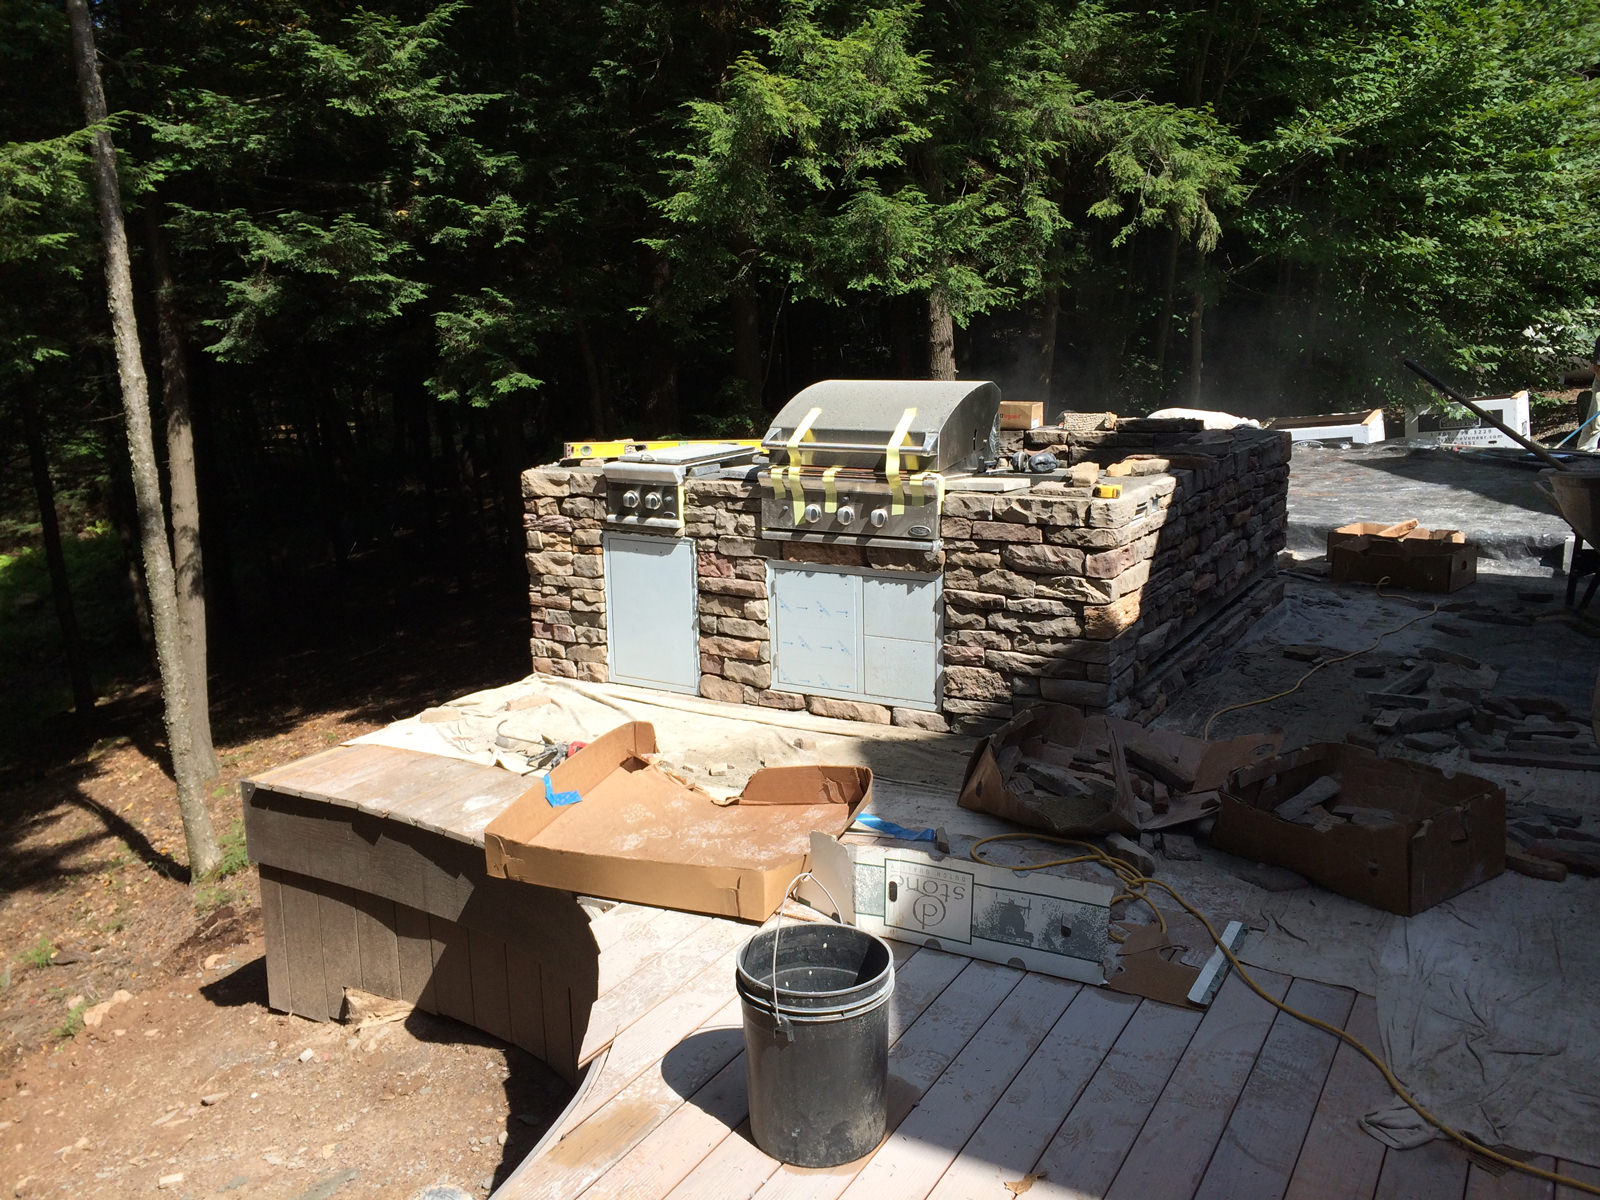 Once the outdoor kitchen appliances were in place and the stone veneer was installed, the space started to feel very inviting.